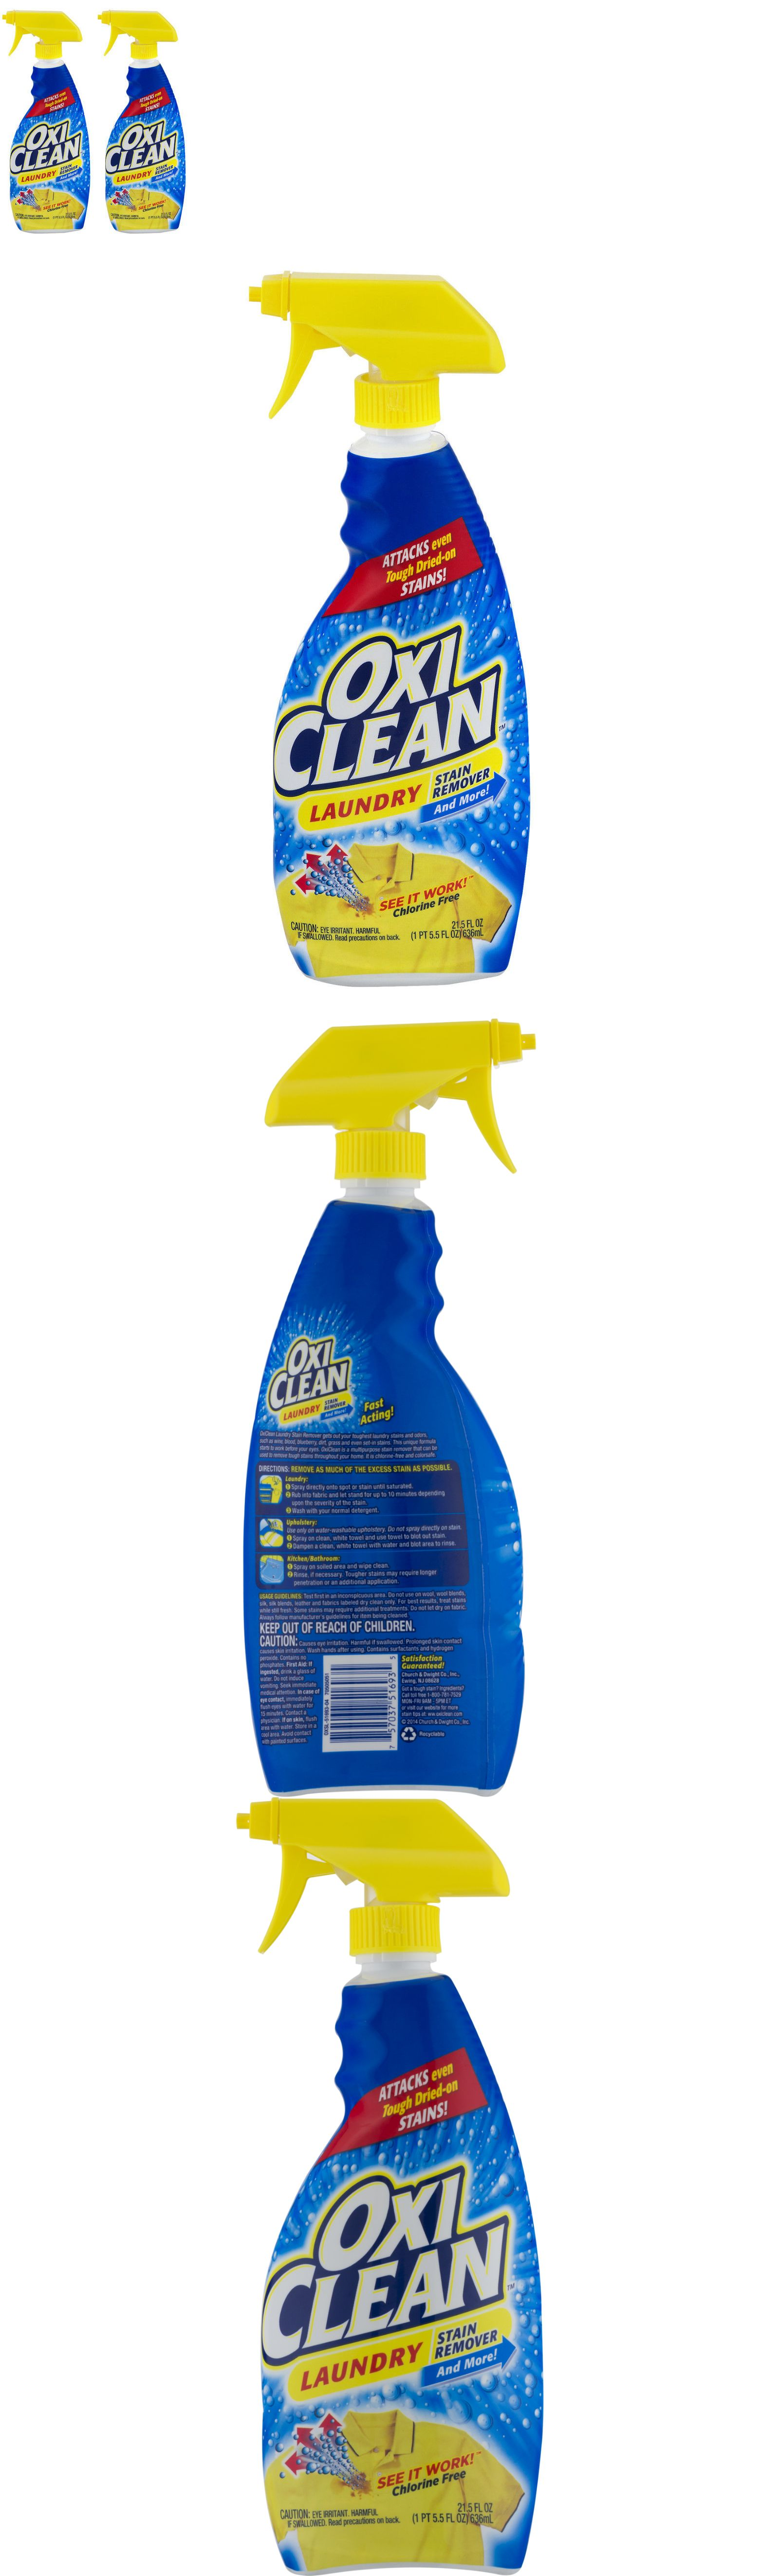 Bleaches And Stain Removers 172208 2 Pack Oxiclean Laundry Stain